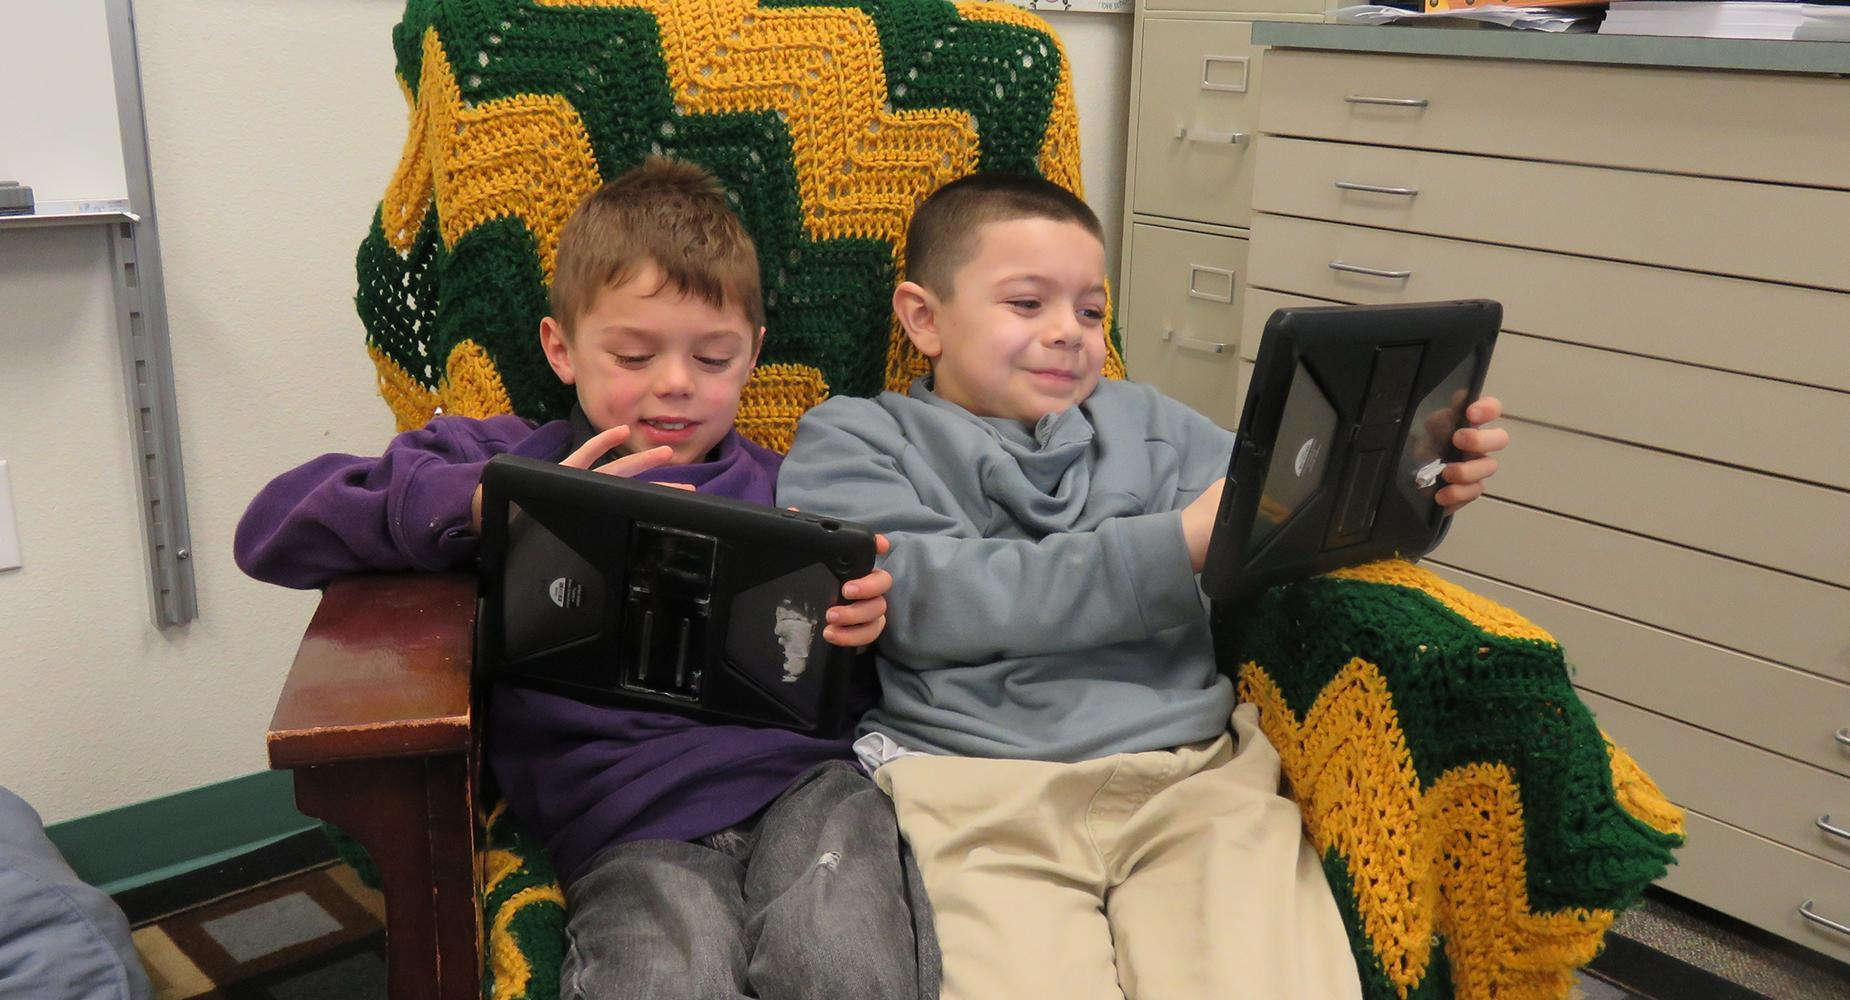 Two boys work with their iPads in a comfortable easy chair.